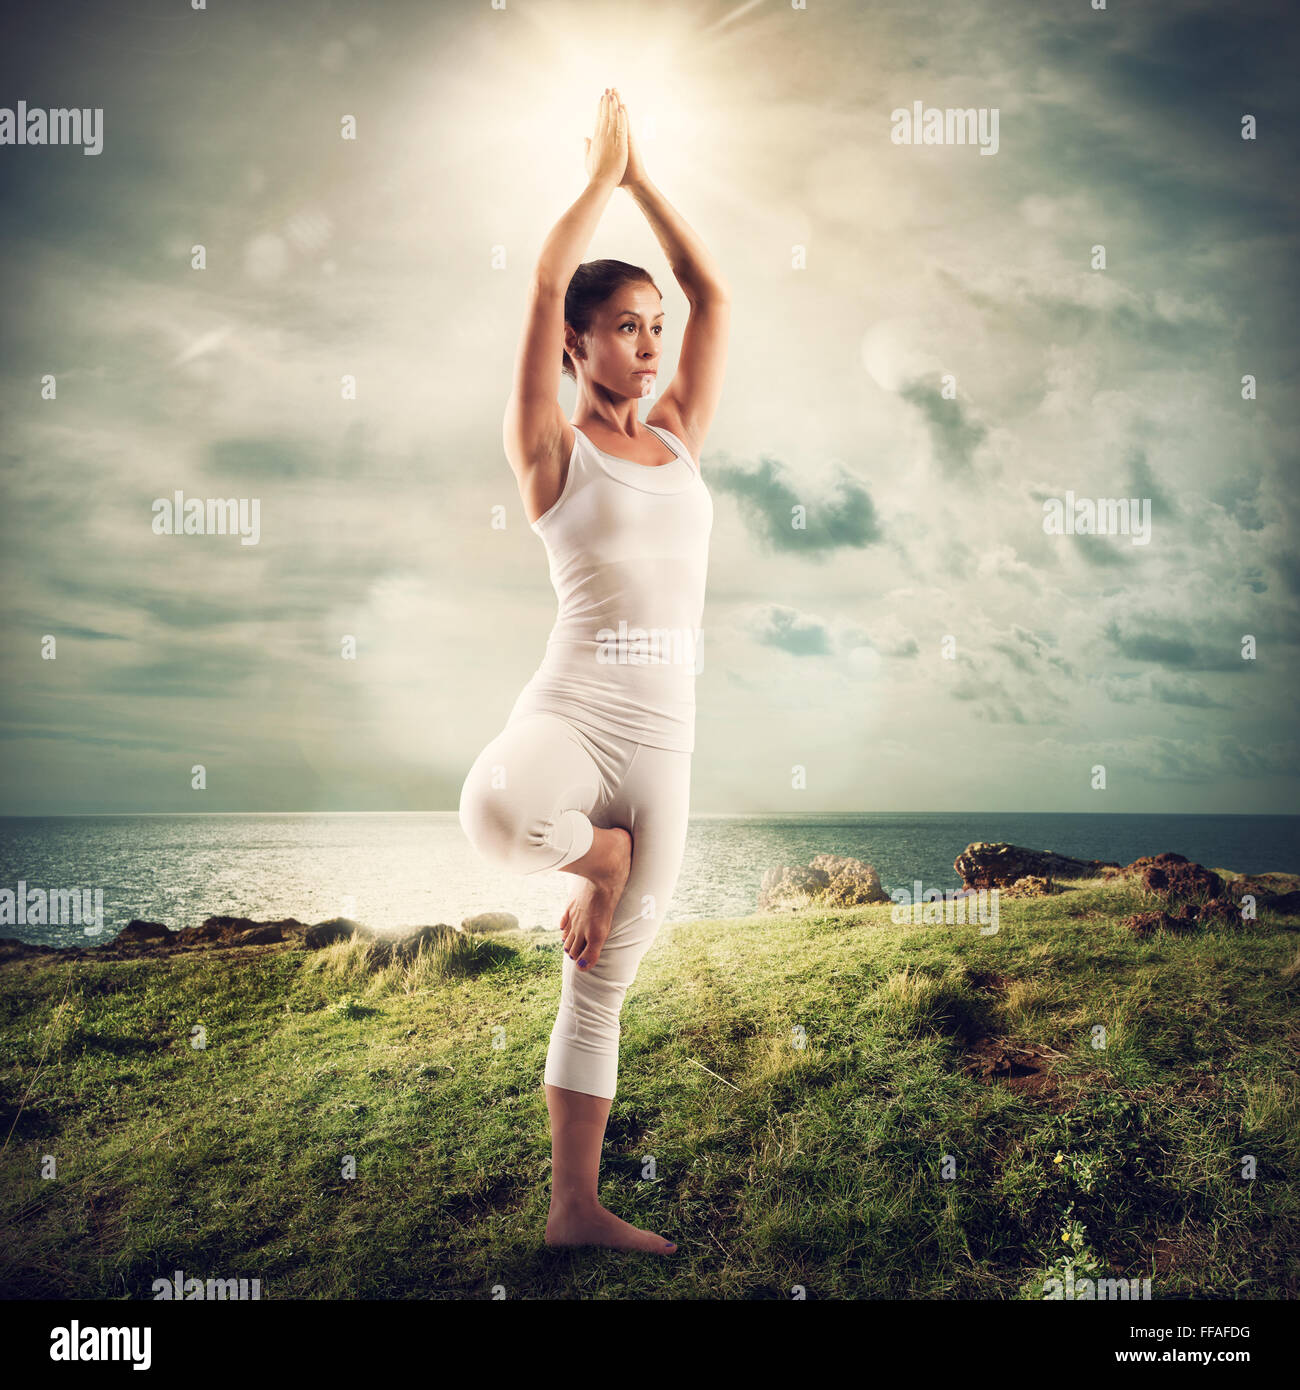 Yoga in a natural landscape - Stock Image